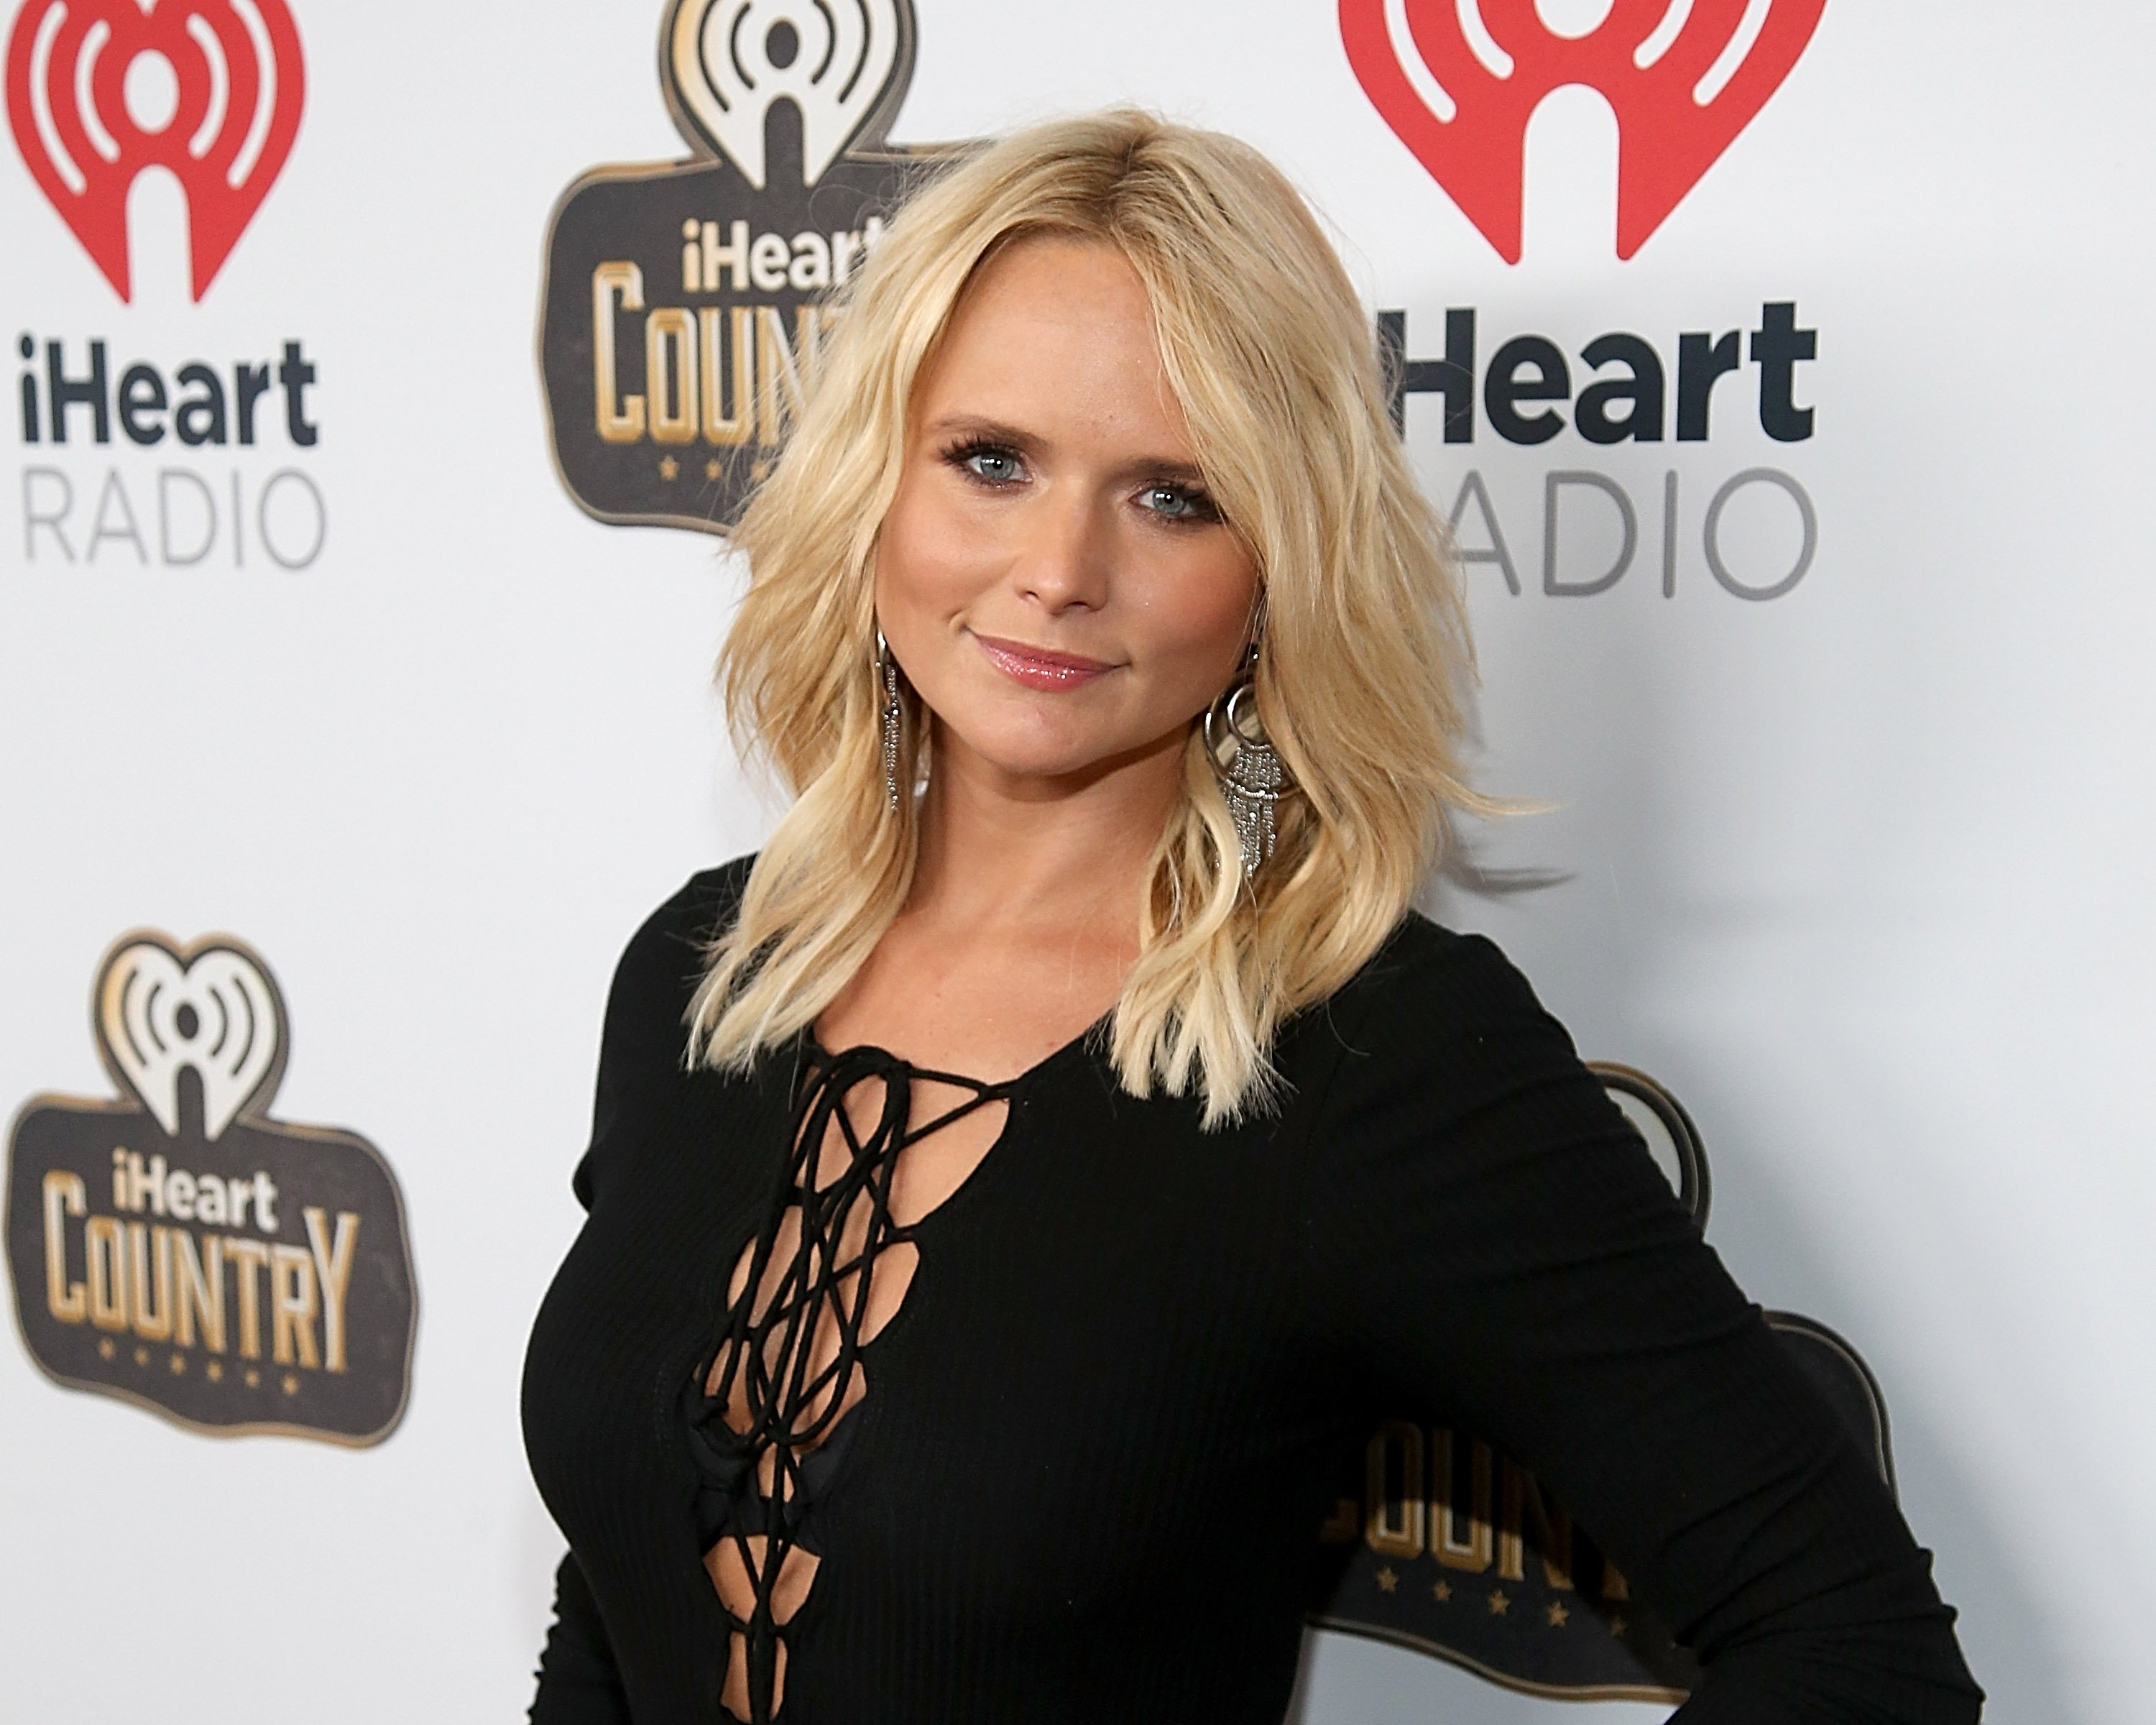 Image Credits: Getty Images | Miranda Lambert was also part of the girl group Pistol Annies